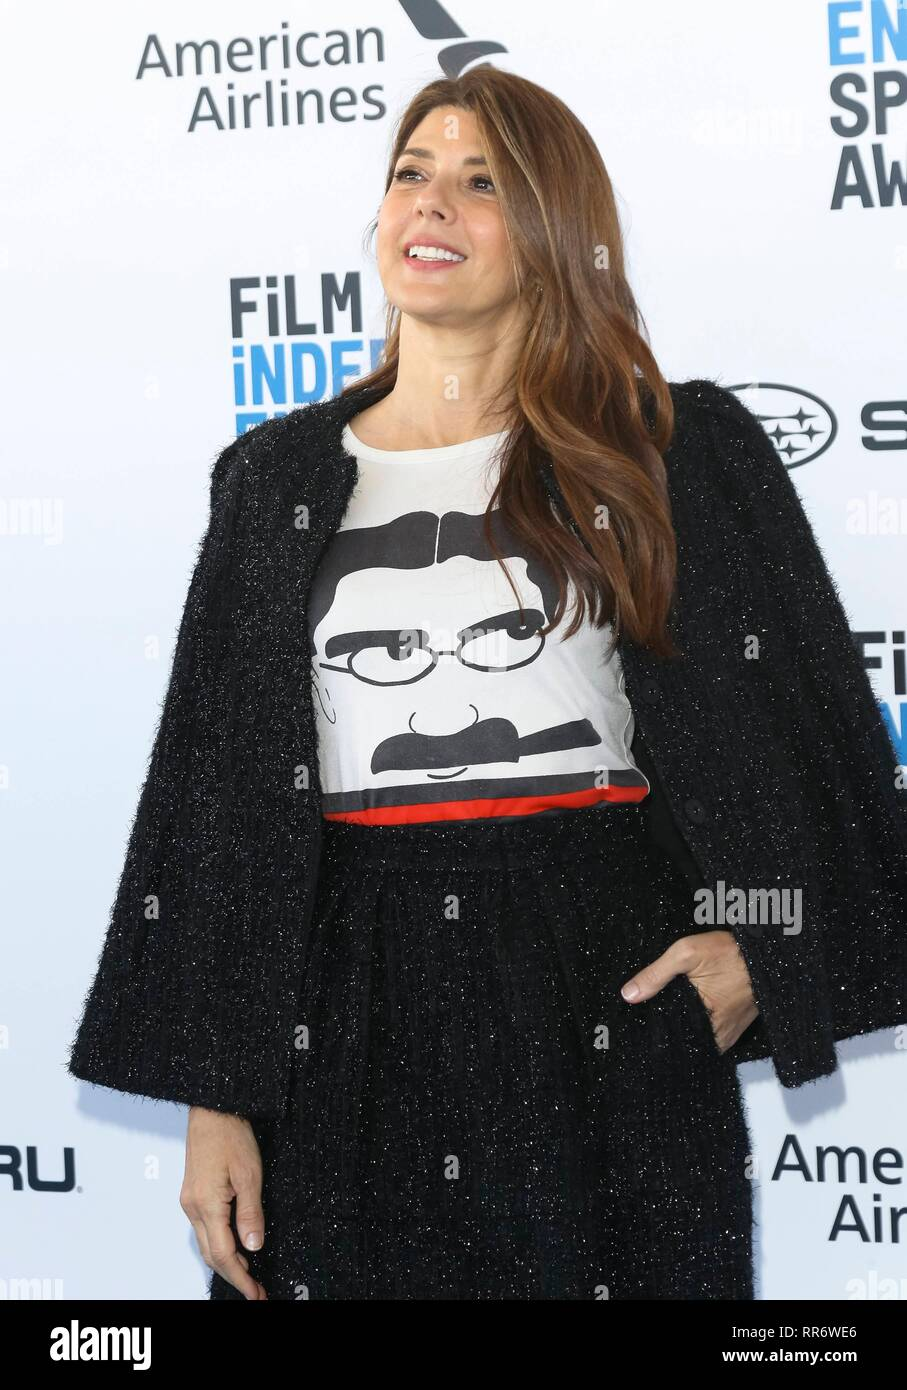 Marisa Tomei arrives at the Film Independent Spirit Awards in a tent in Santa Monica, Los Angeles, USA, on 23 February 2019. | usage worldwide - Stock Image